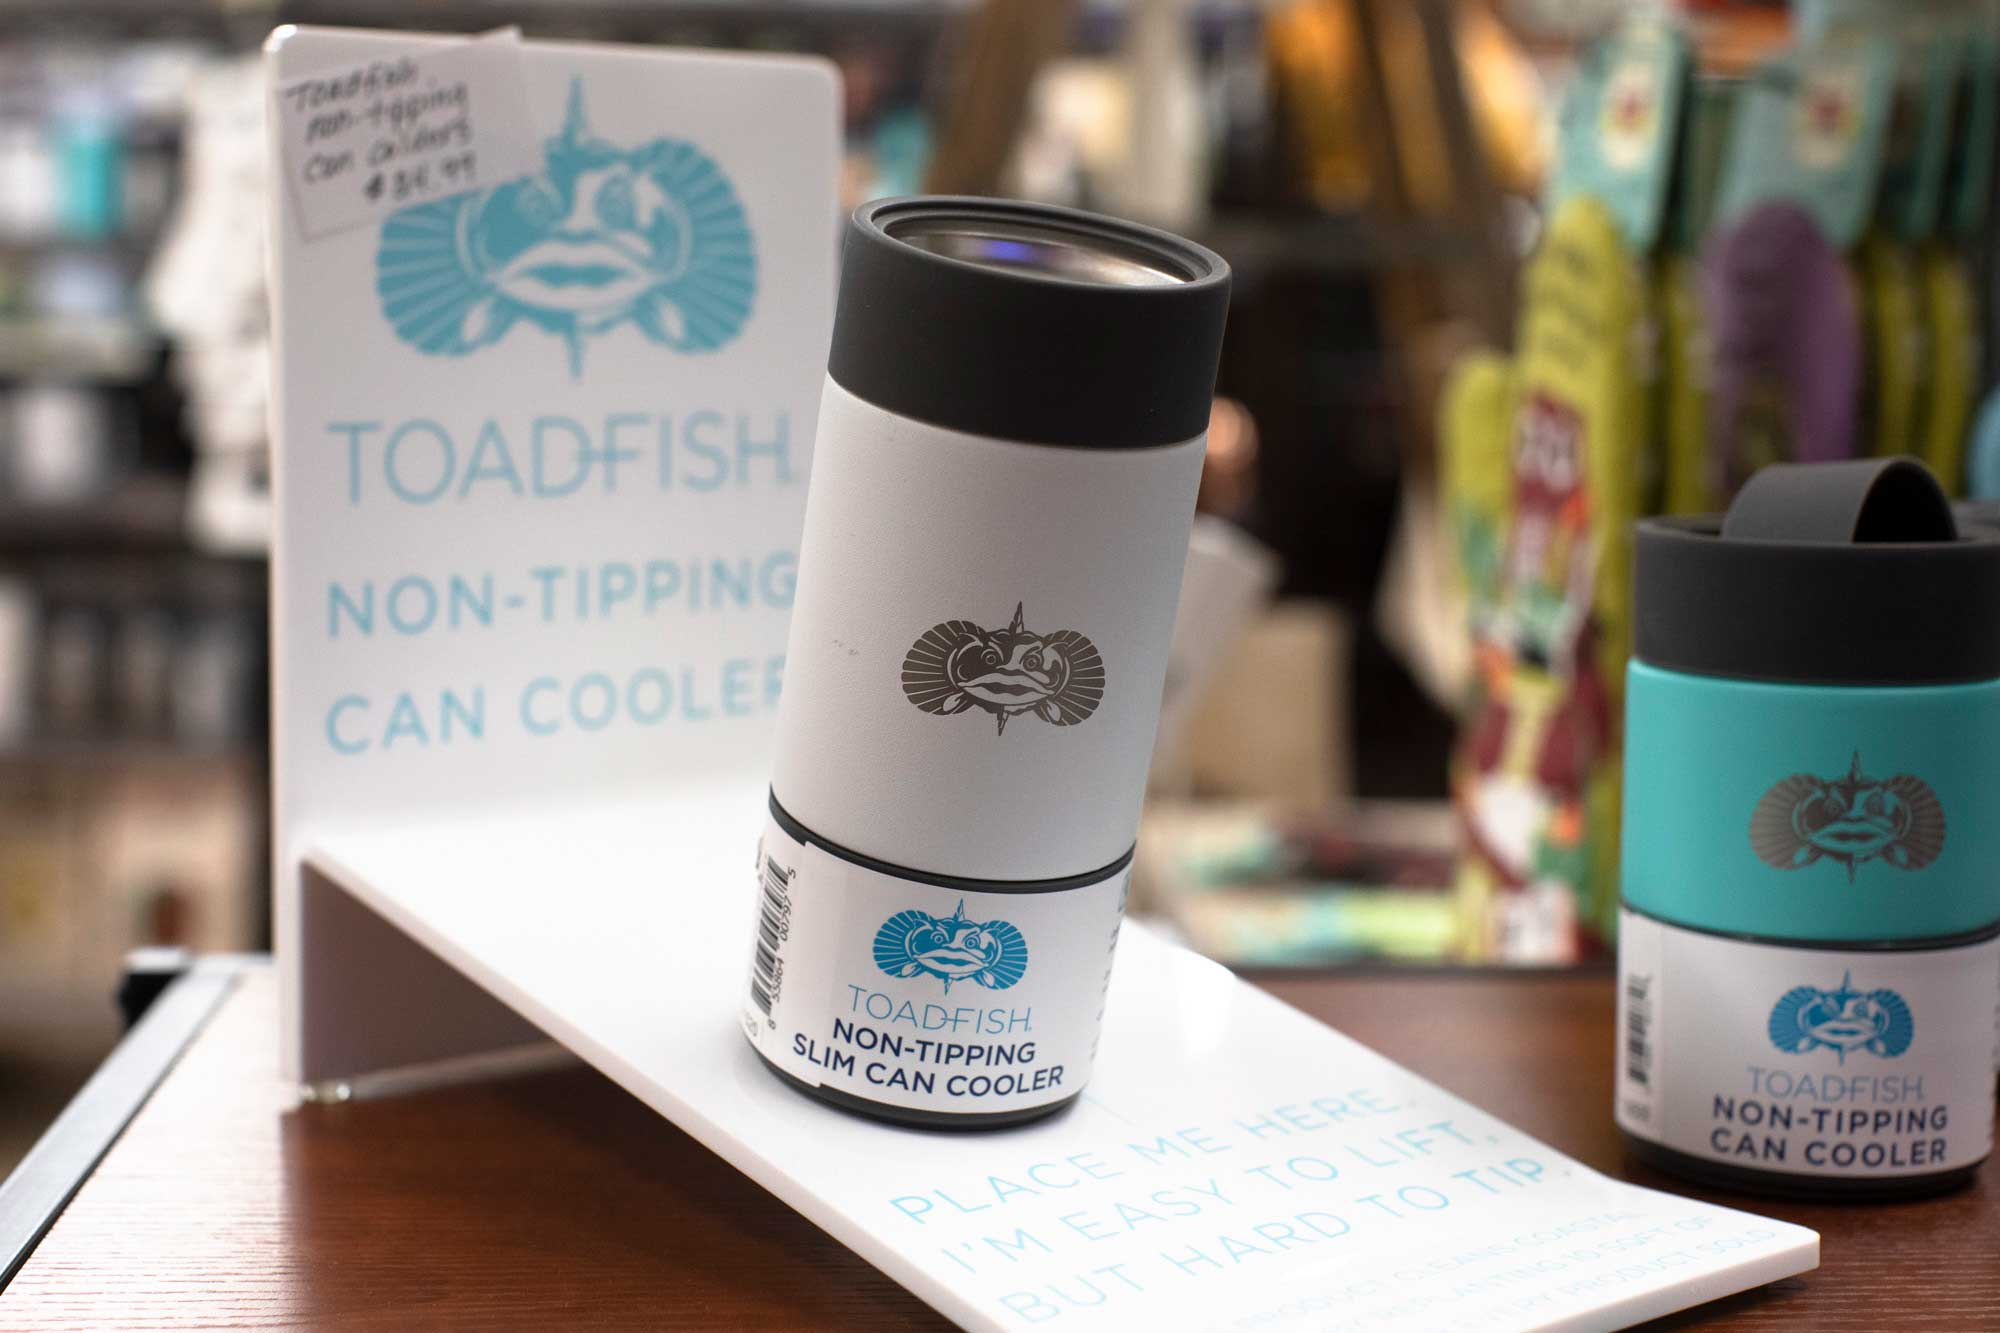 toad fish brand non tipping beer cooler